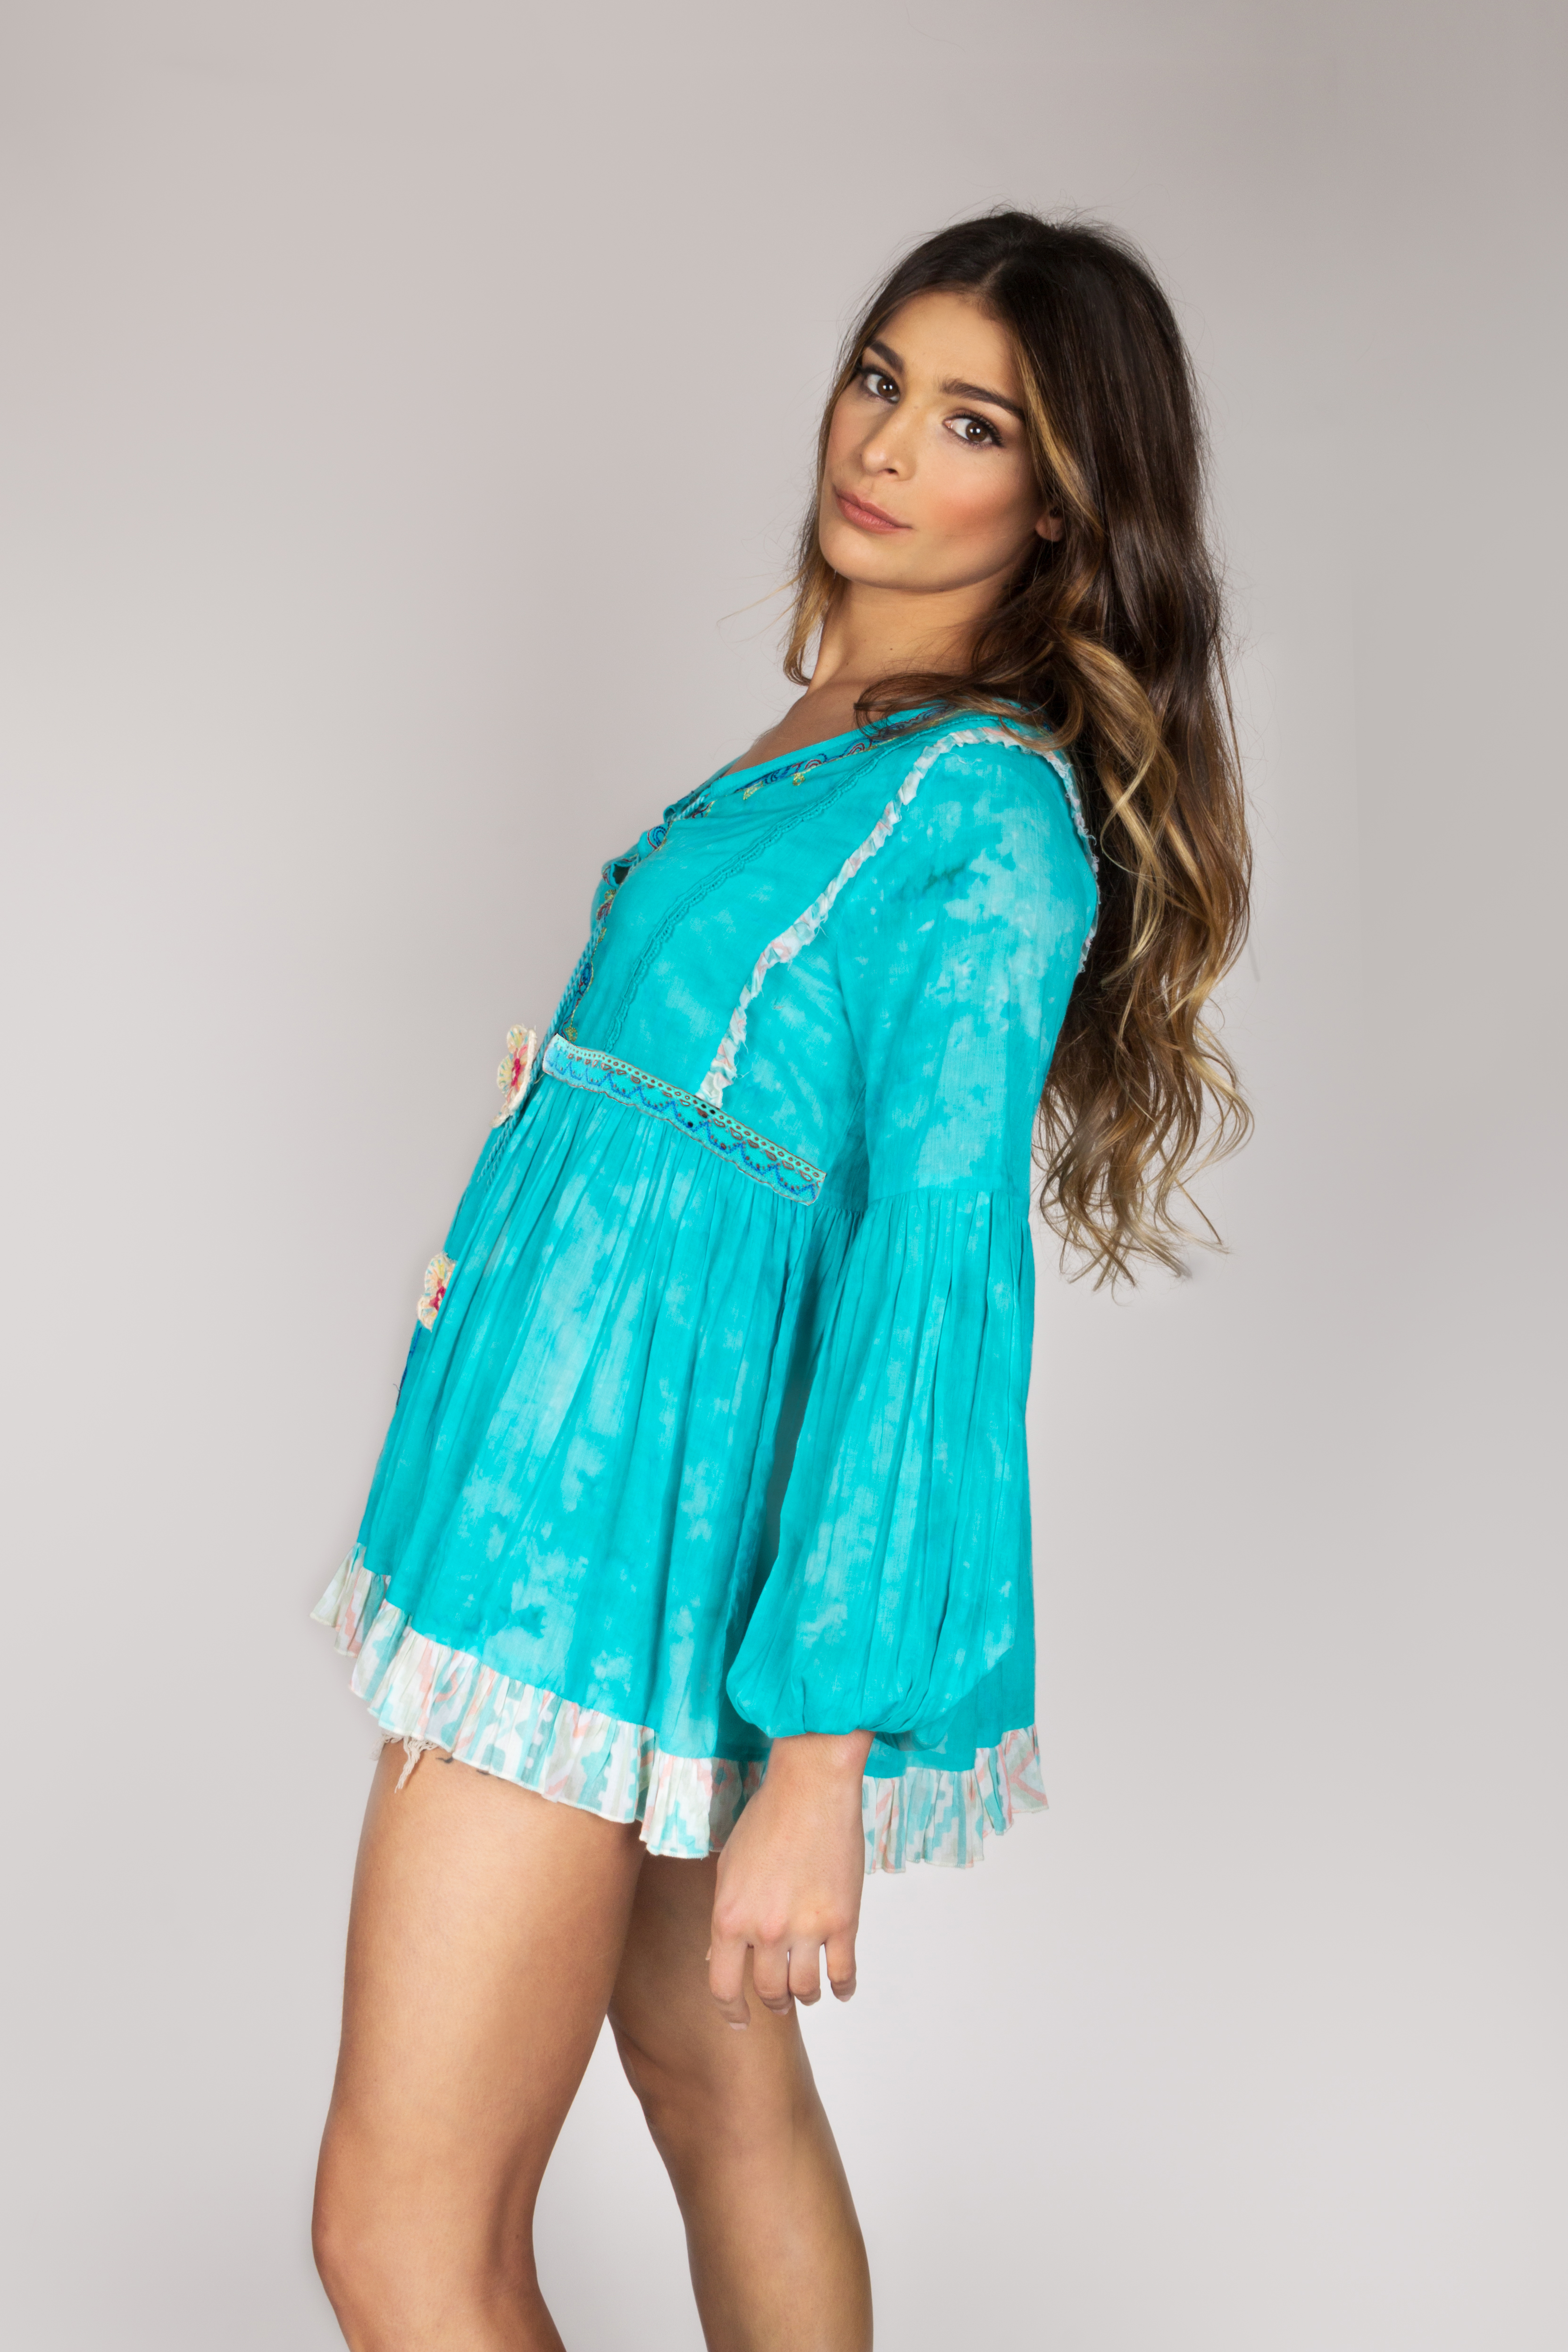 Shoklett: Tied Bodice Fit & Flare Sea Flower Tunic Sherlyn SOLD OUT